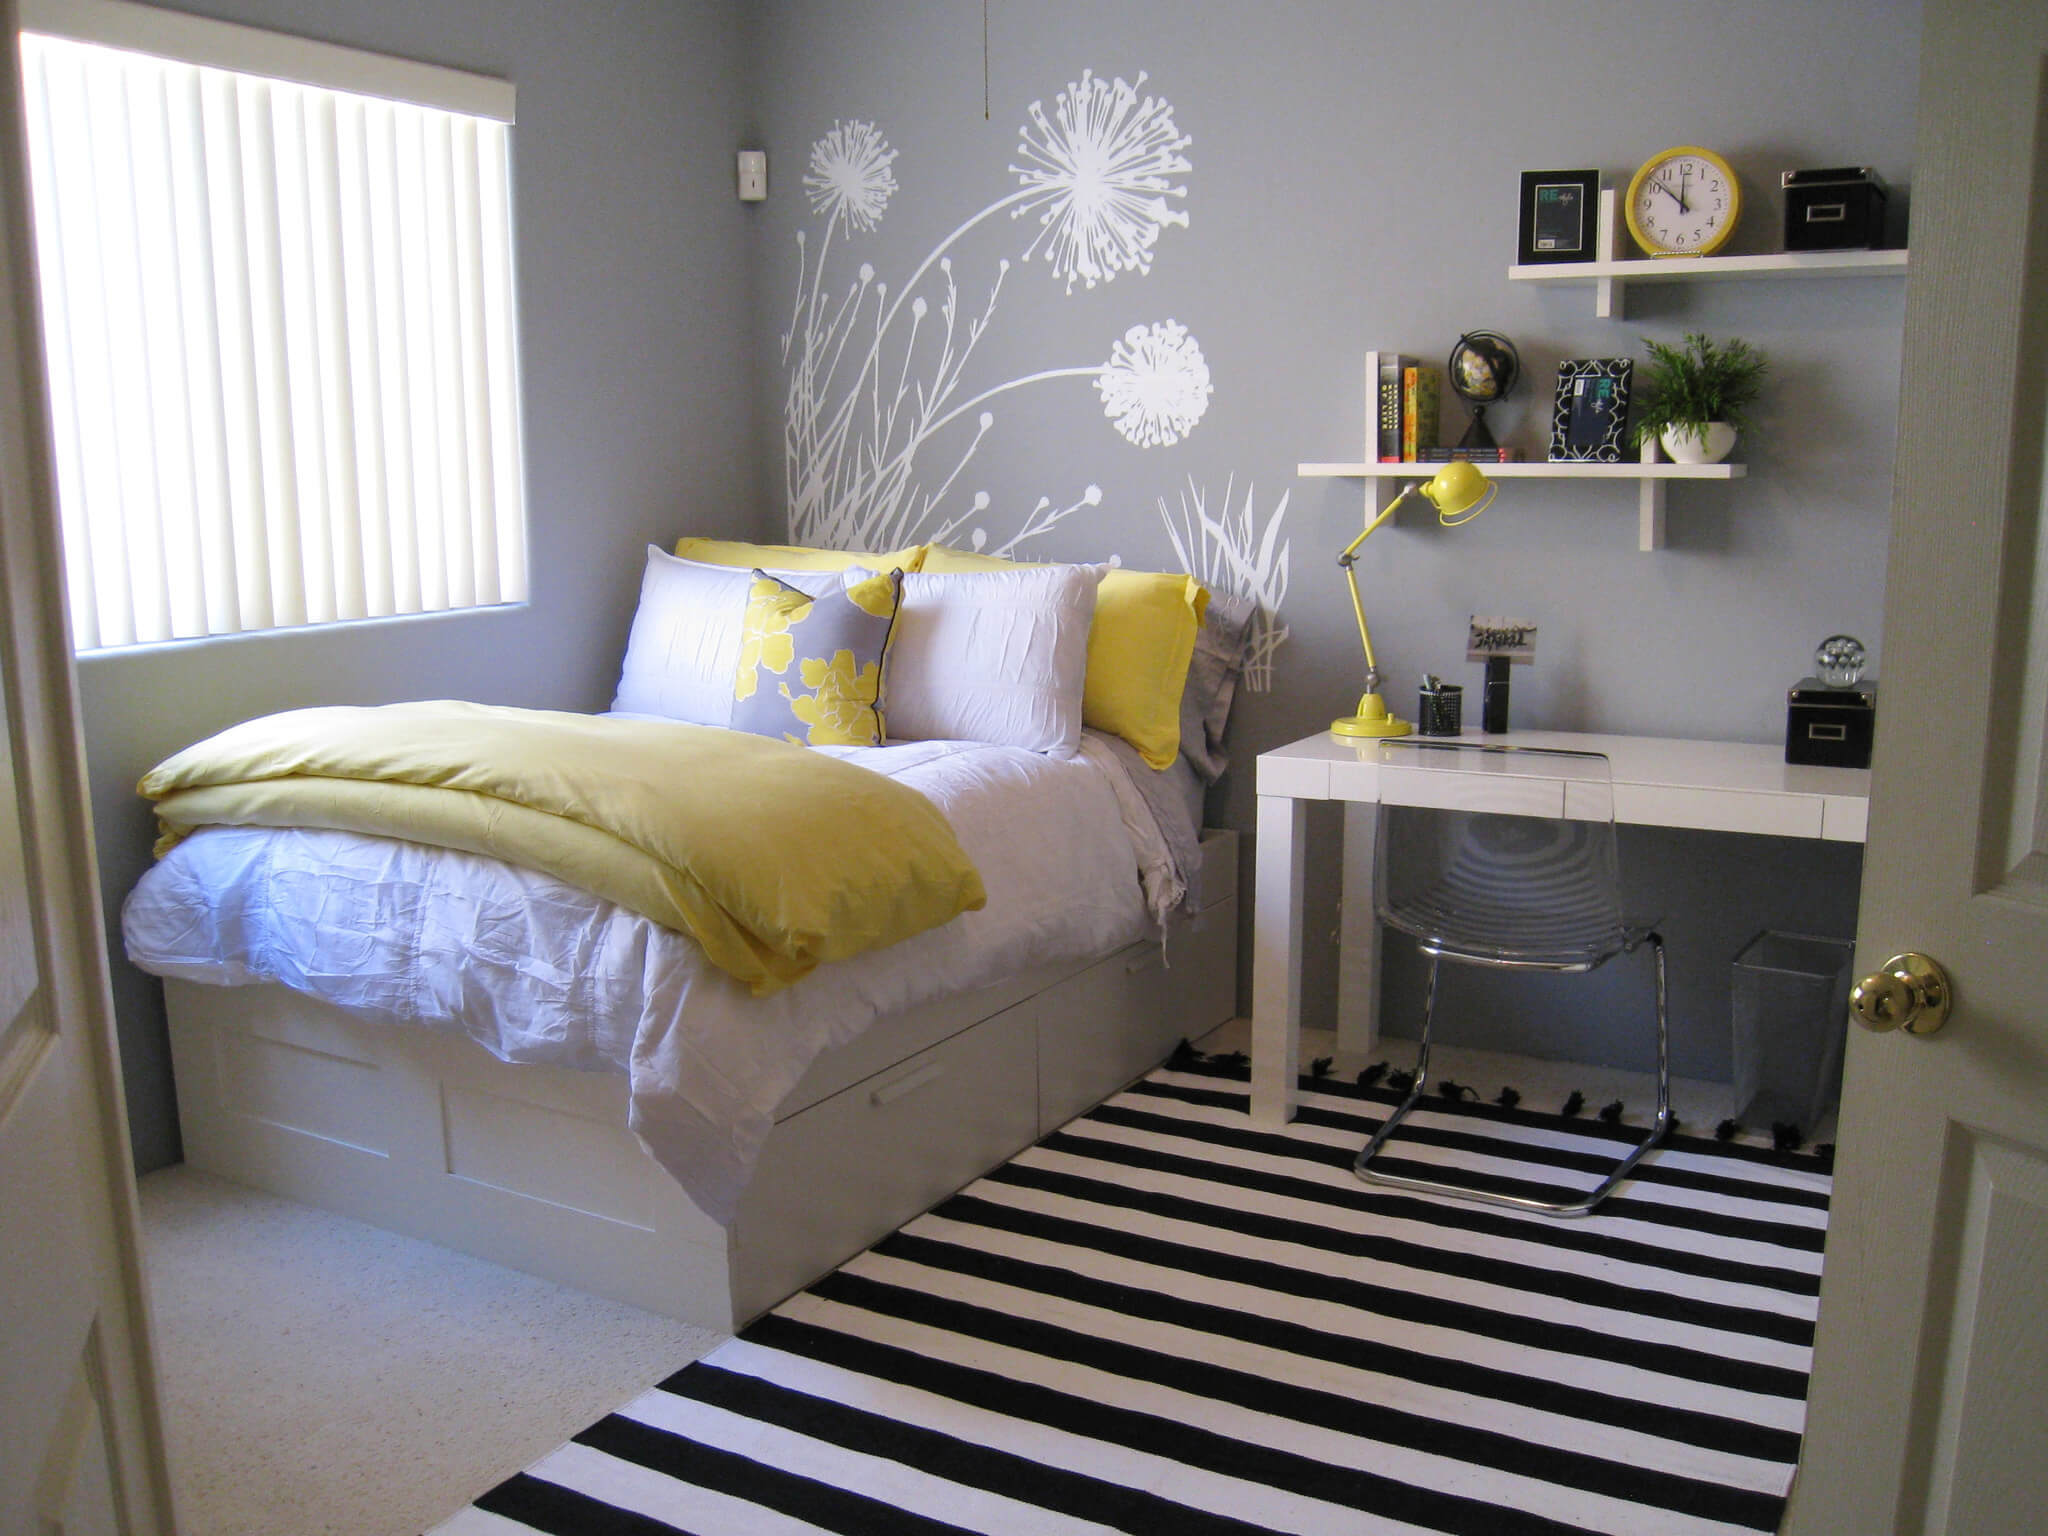 20 Bedroom Color Ideas To Make Your Room Awesome Houseminds